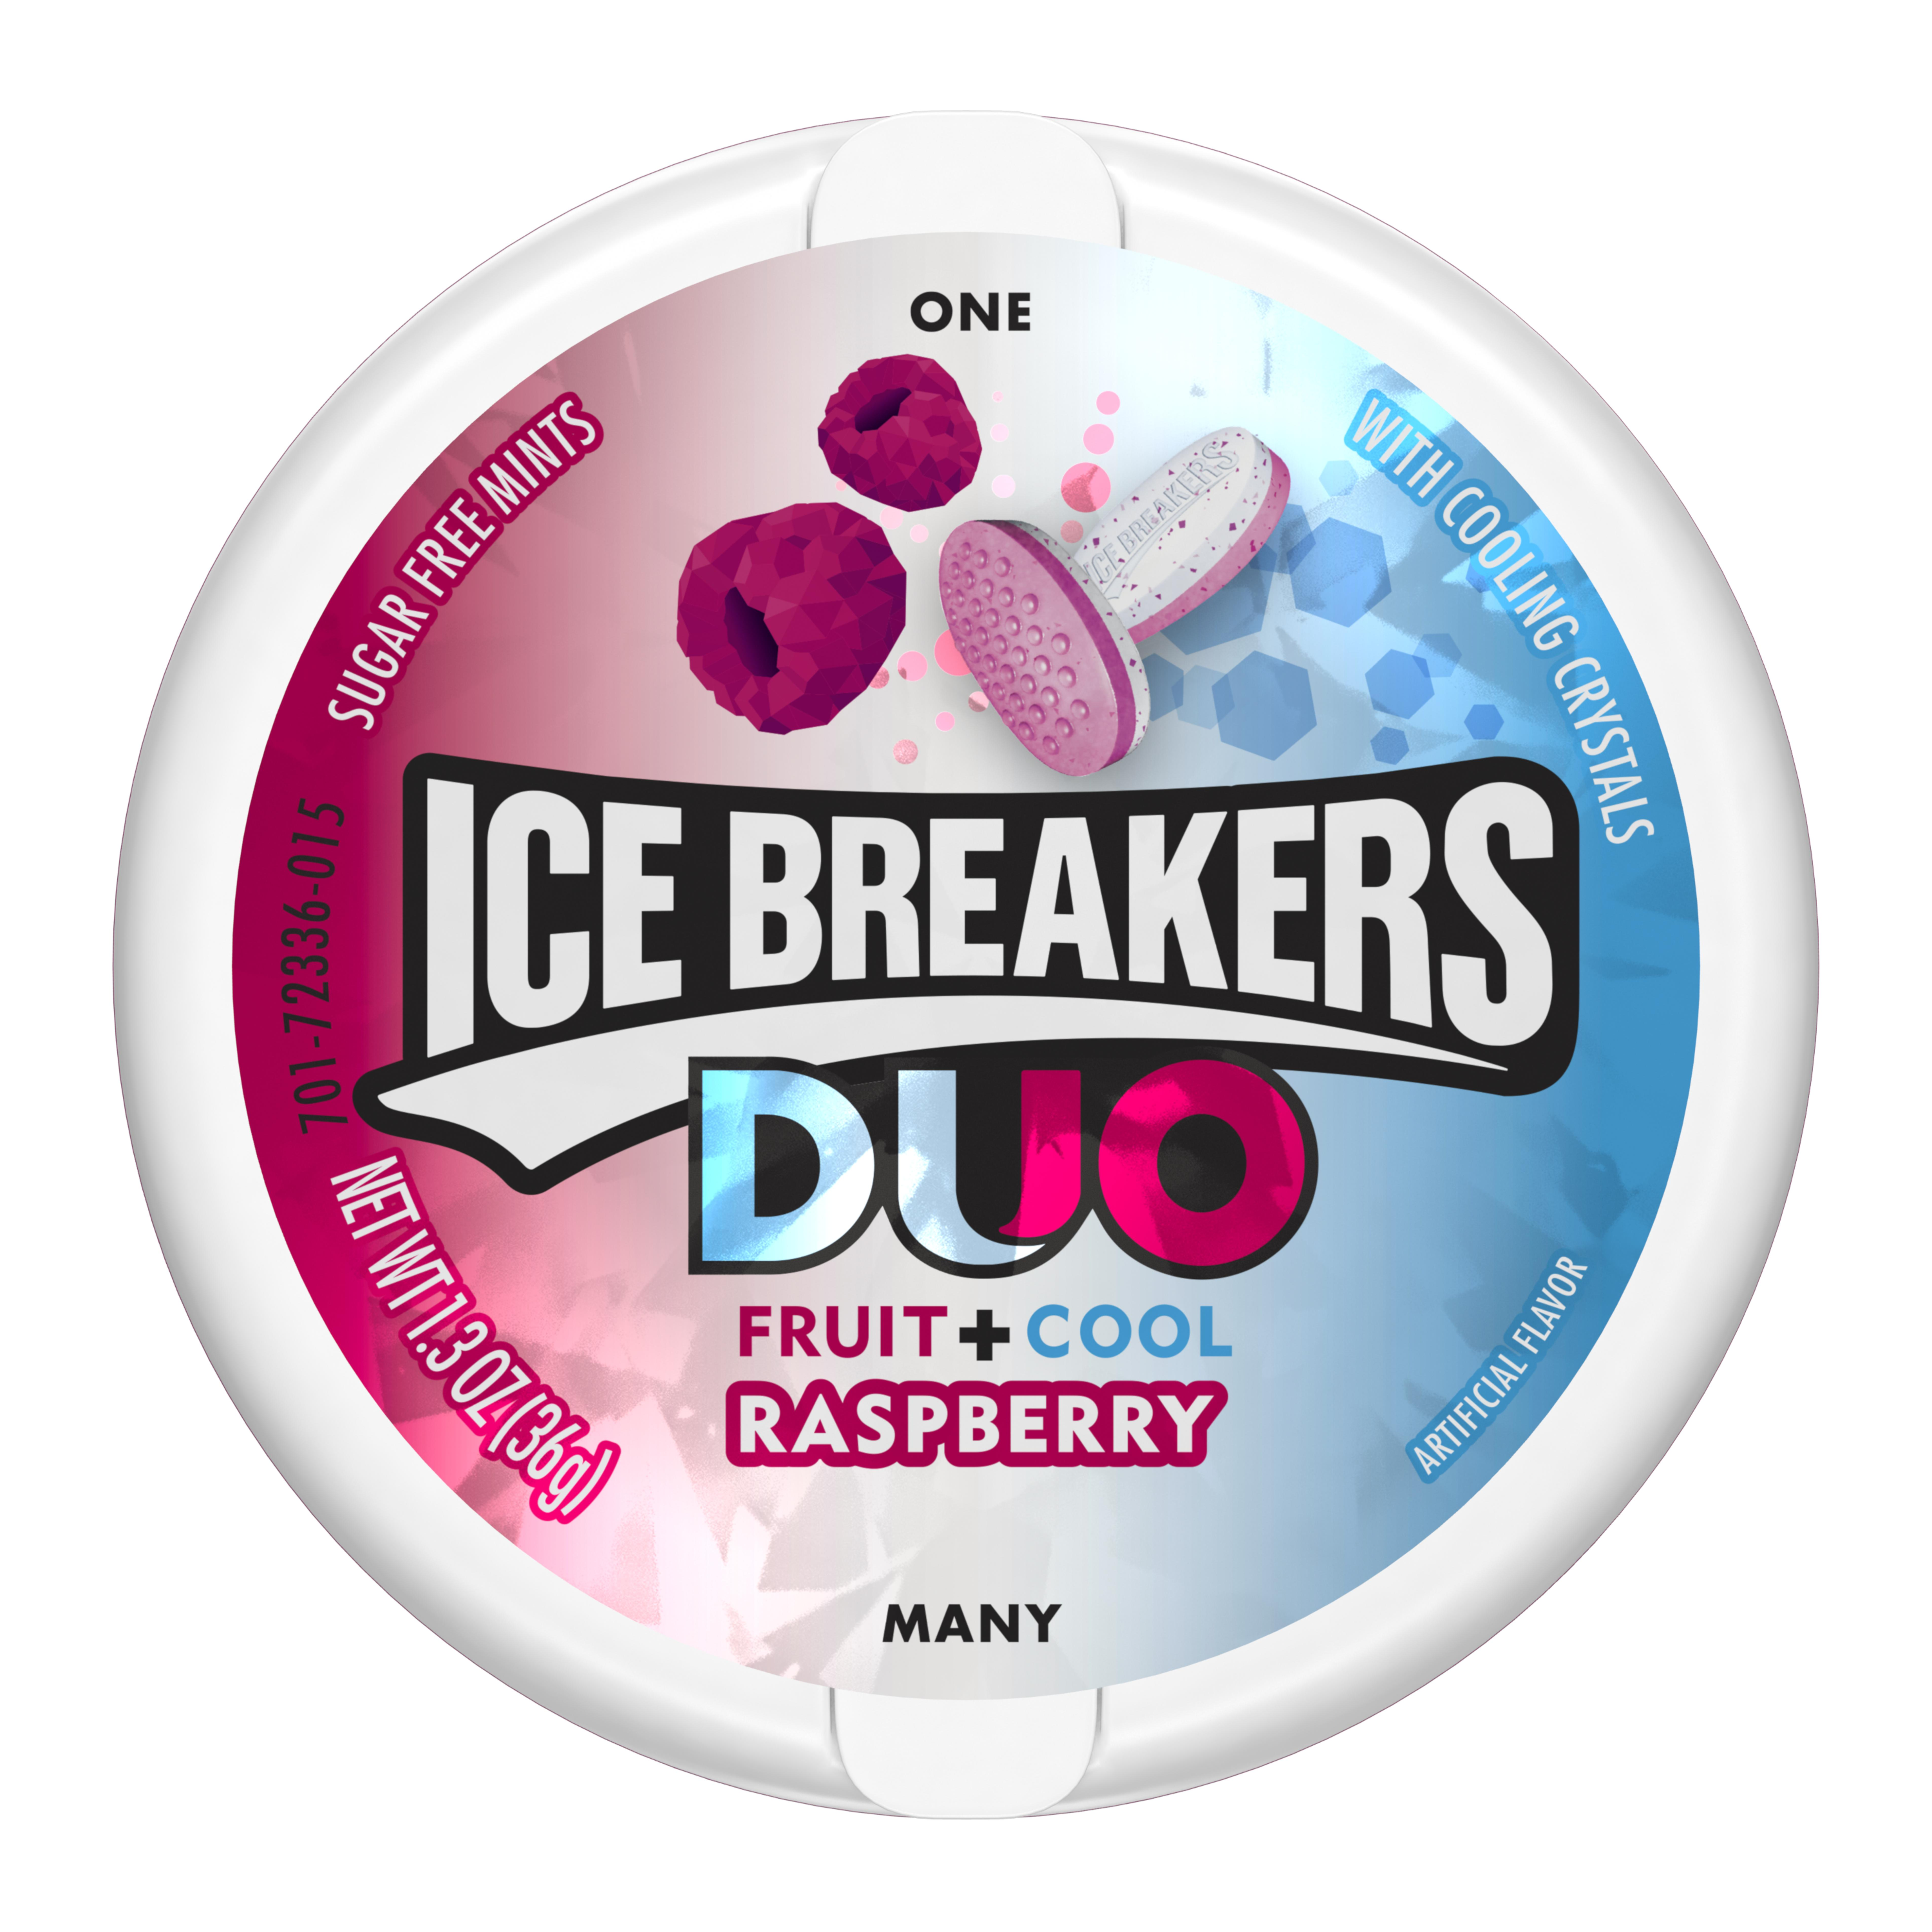 Ice Breakers Duo Fruit + Cool Raspberry Sugar Free Mints, 1.3 oz